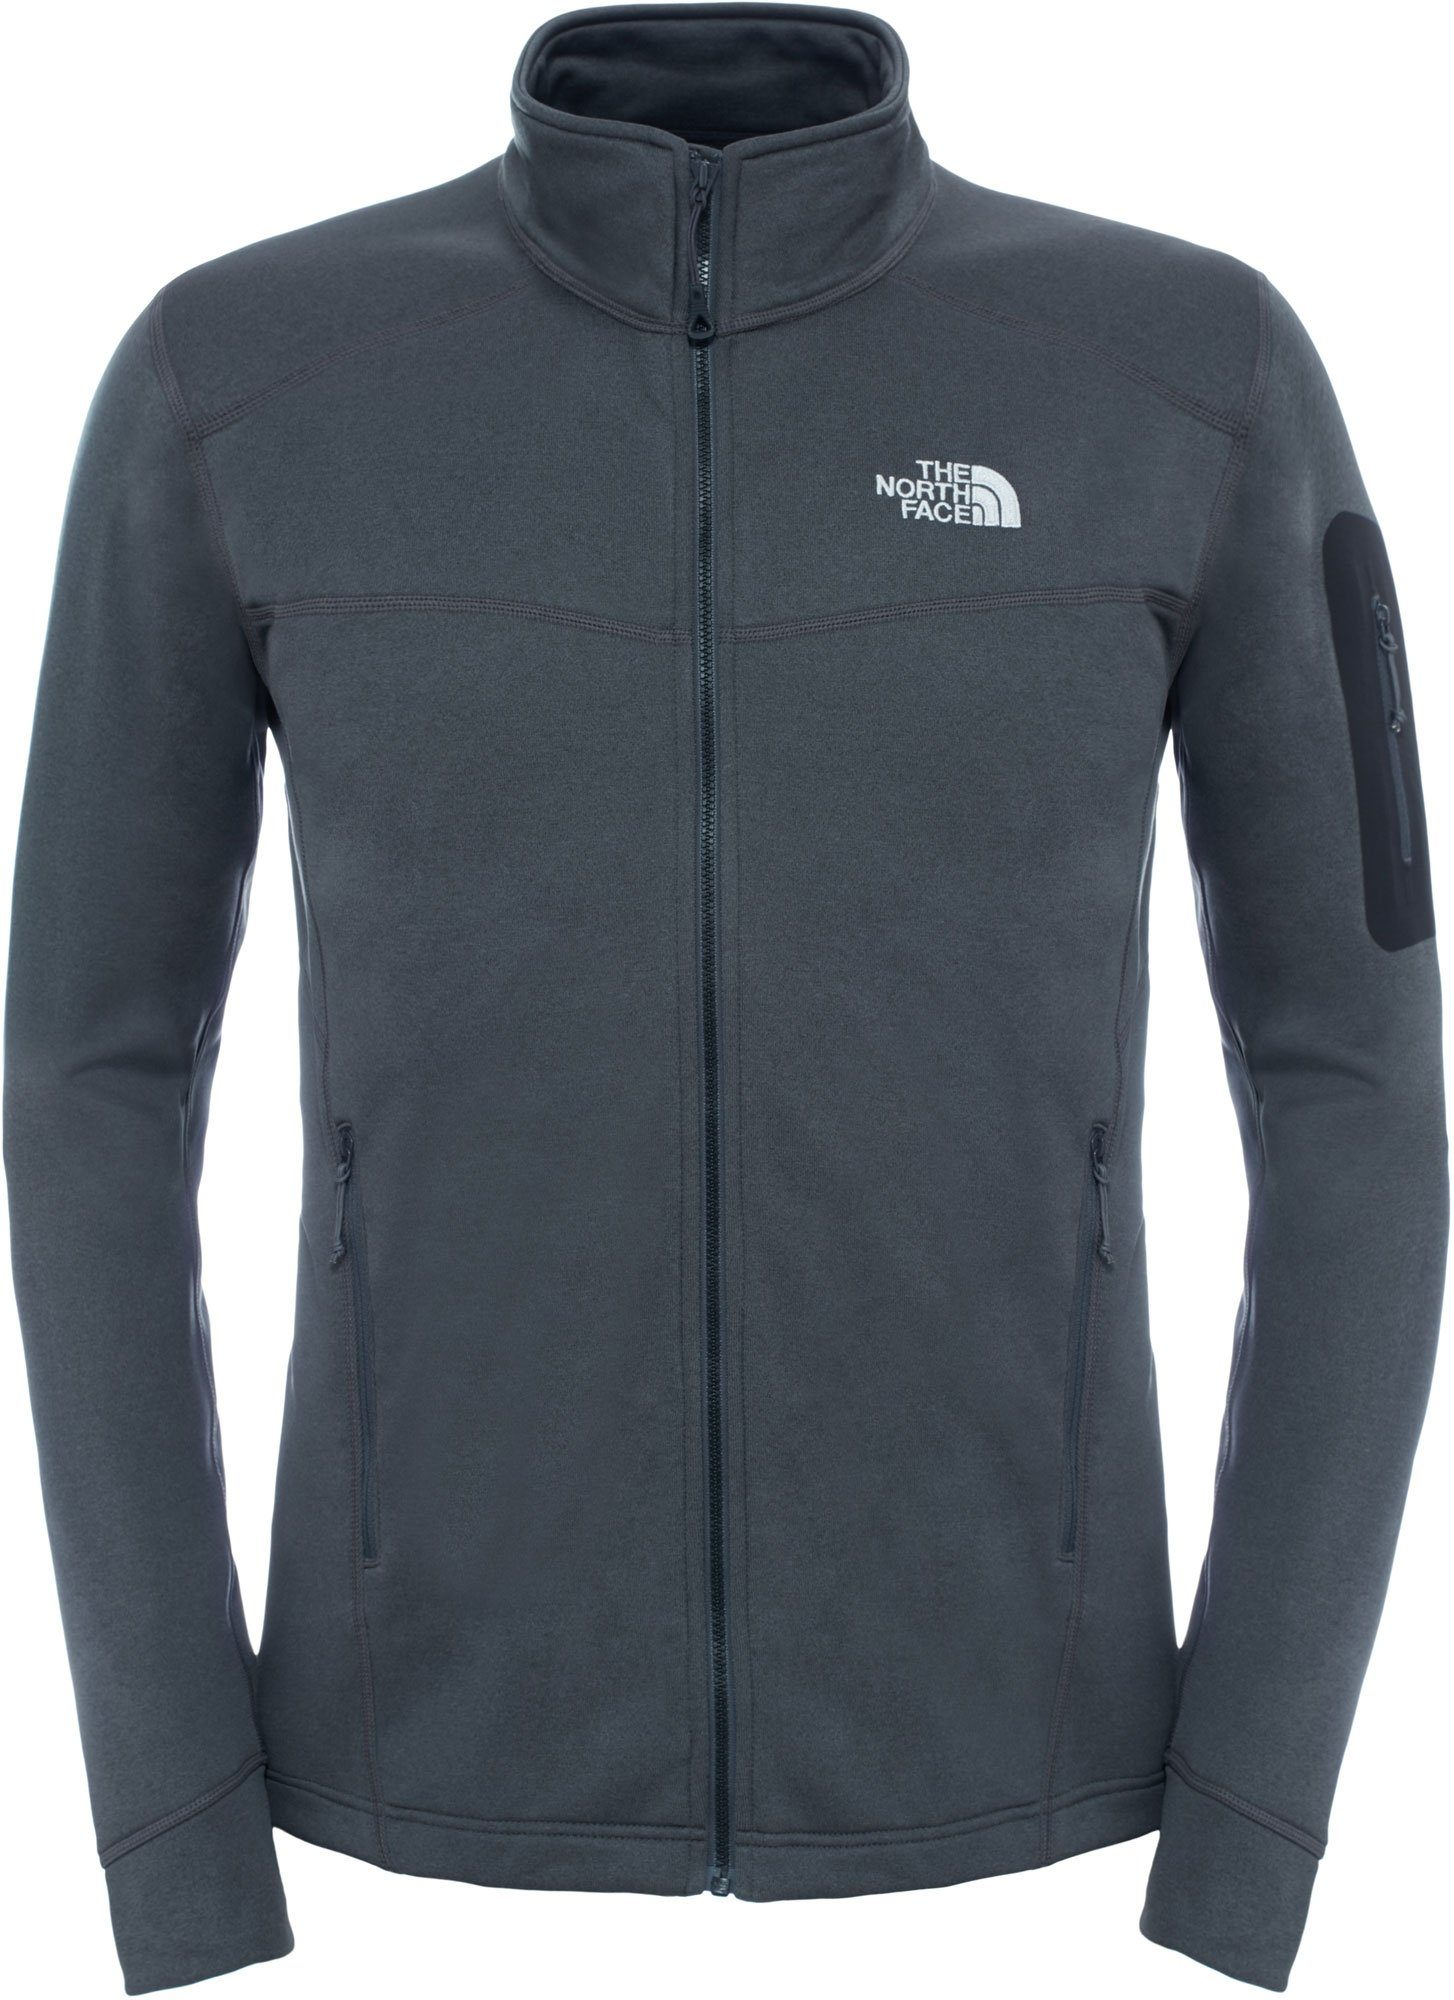 The North Face Outdoorjacke »Hadoken Full Zip Jacket Men«